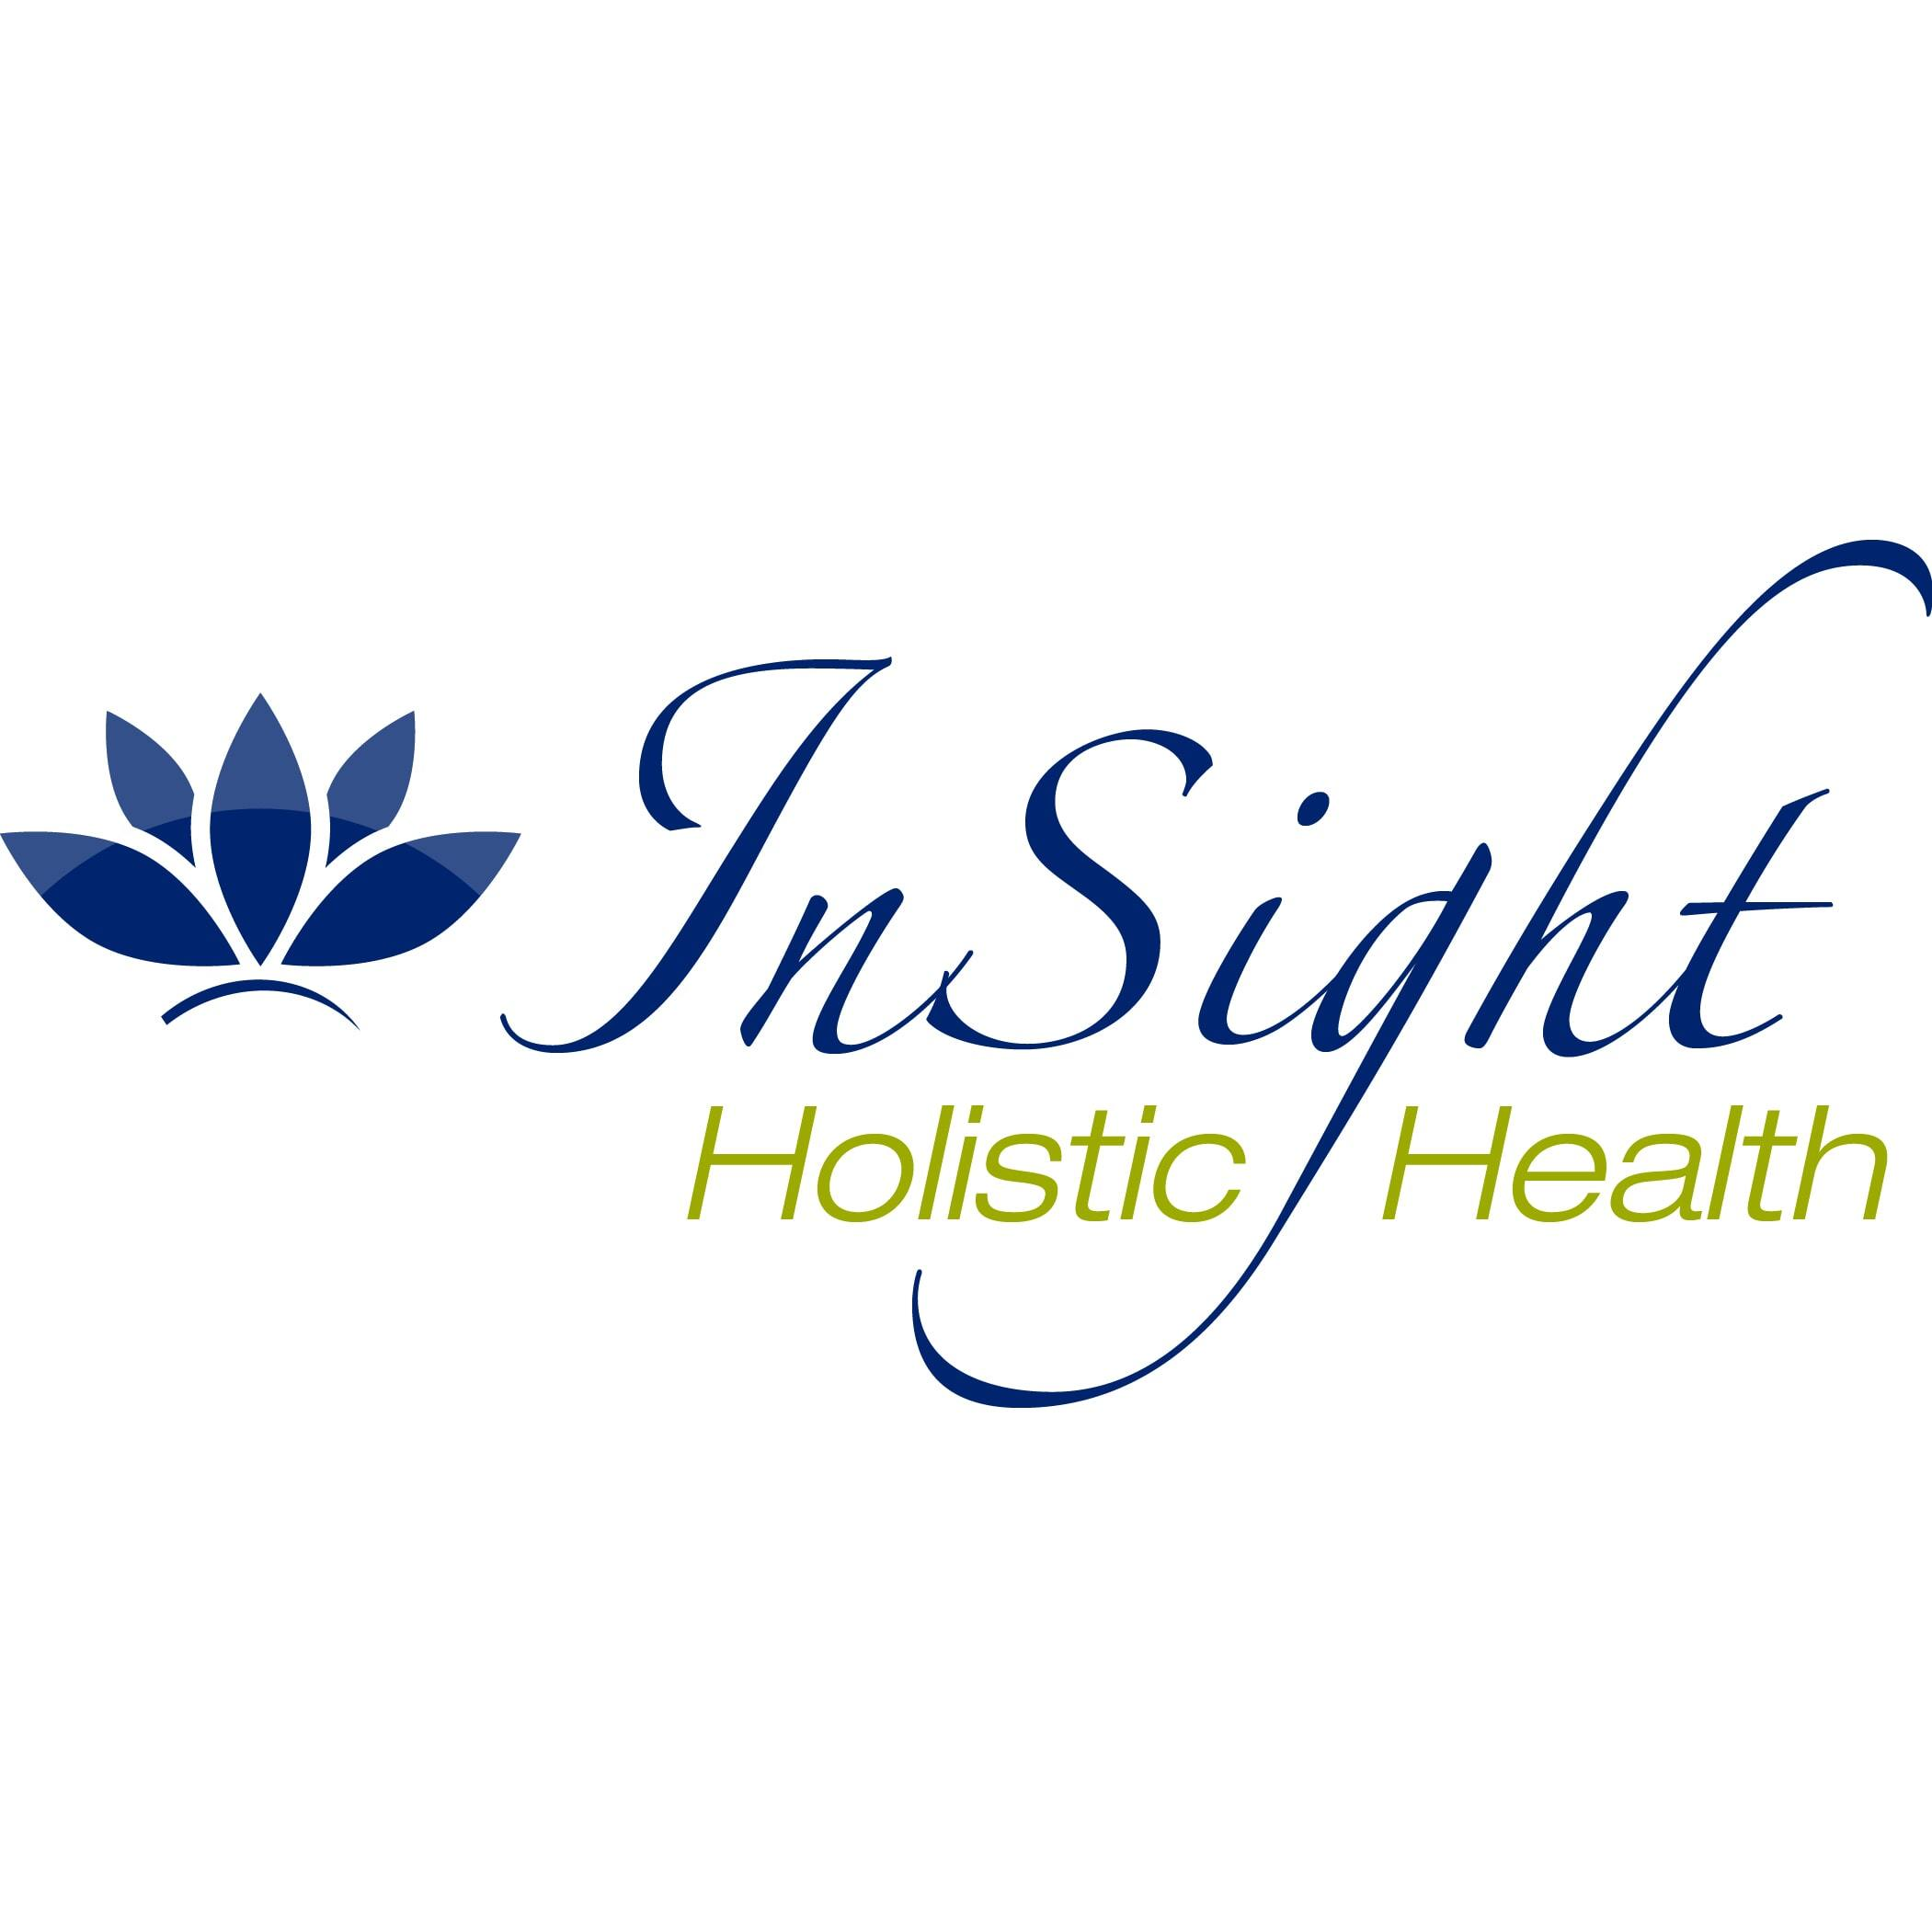 Insight Holistic Health - Bedminster, NJ - Physical Therapy & Rehab